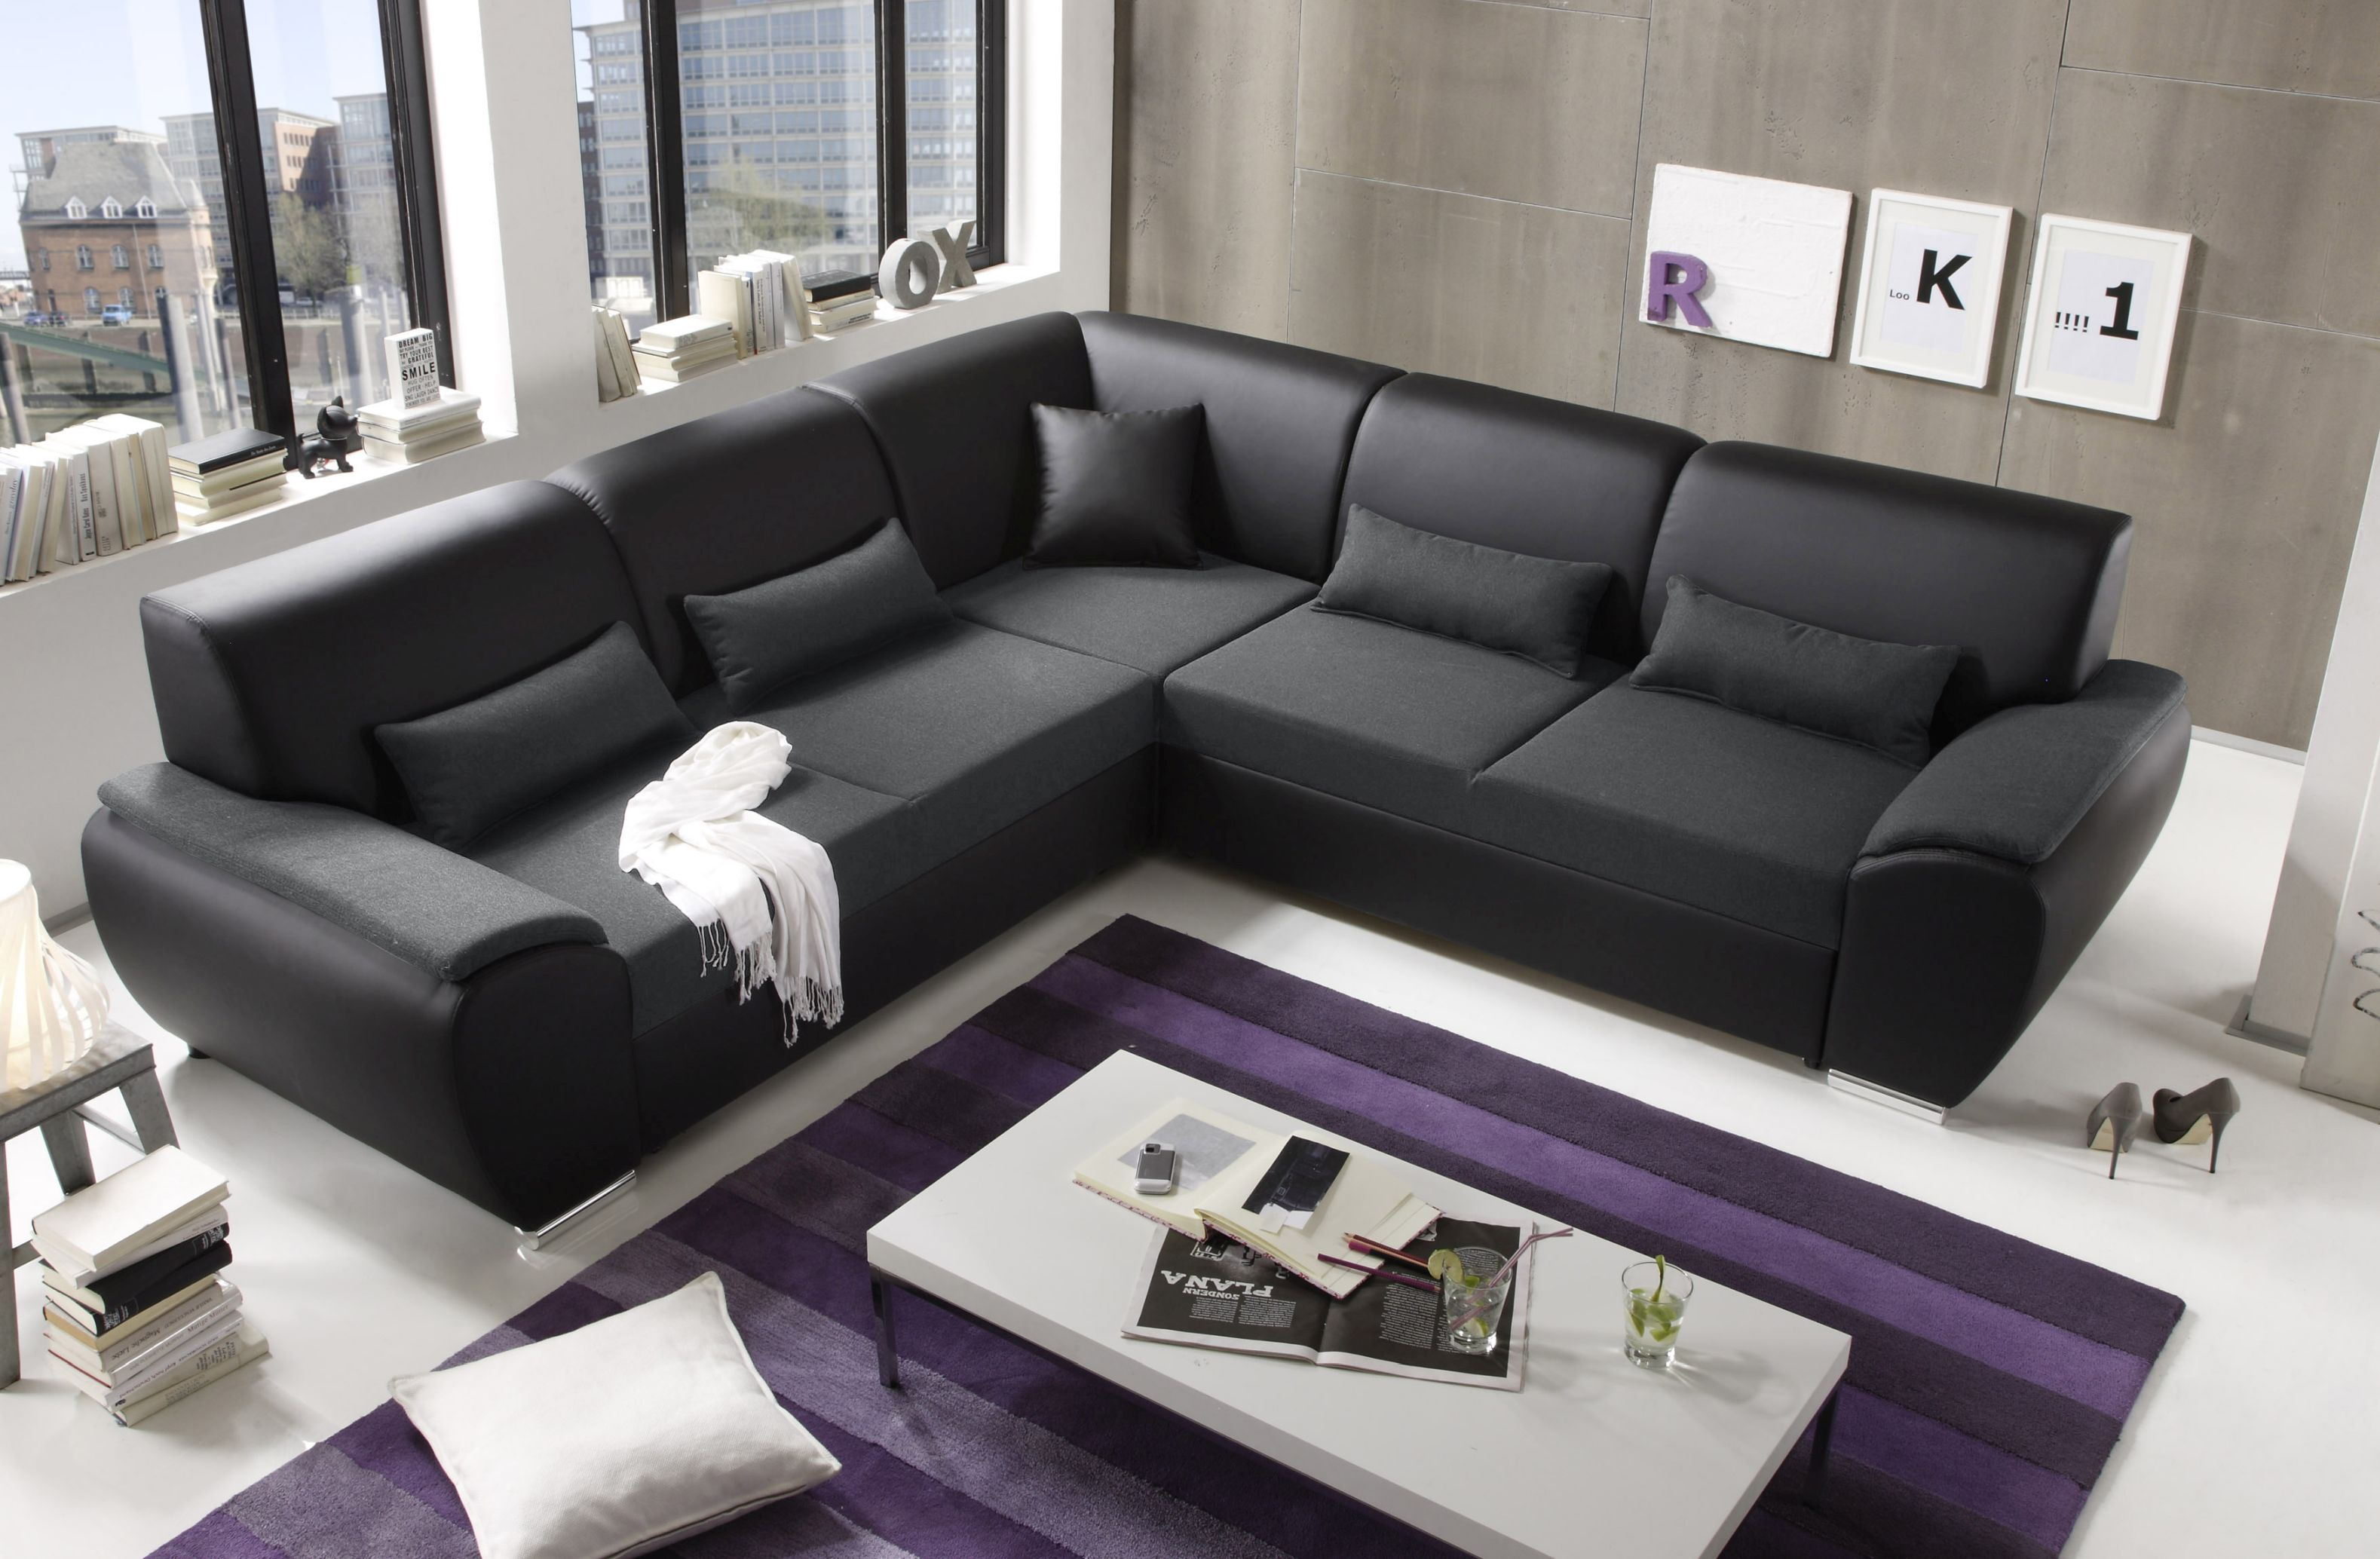 kombiecke antara couch schlafcouch funktionssofa ausziehbar anthrazit 272 cm ebay. Black Bedroom Furniture Sets. Home Design Ideas